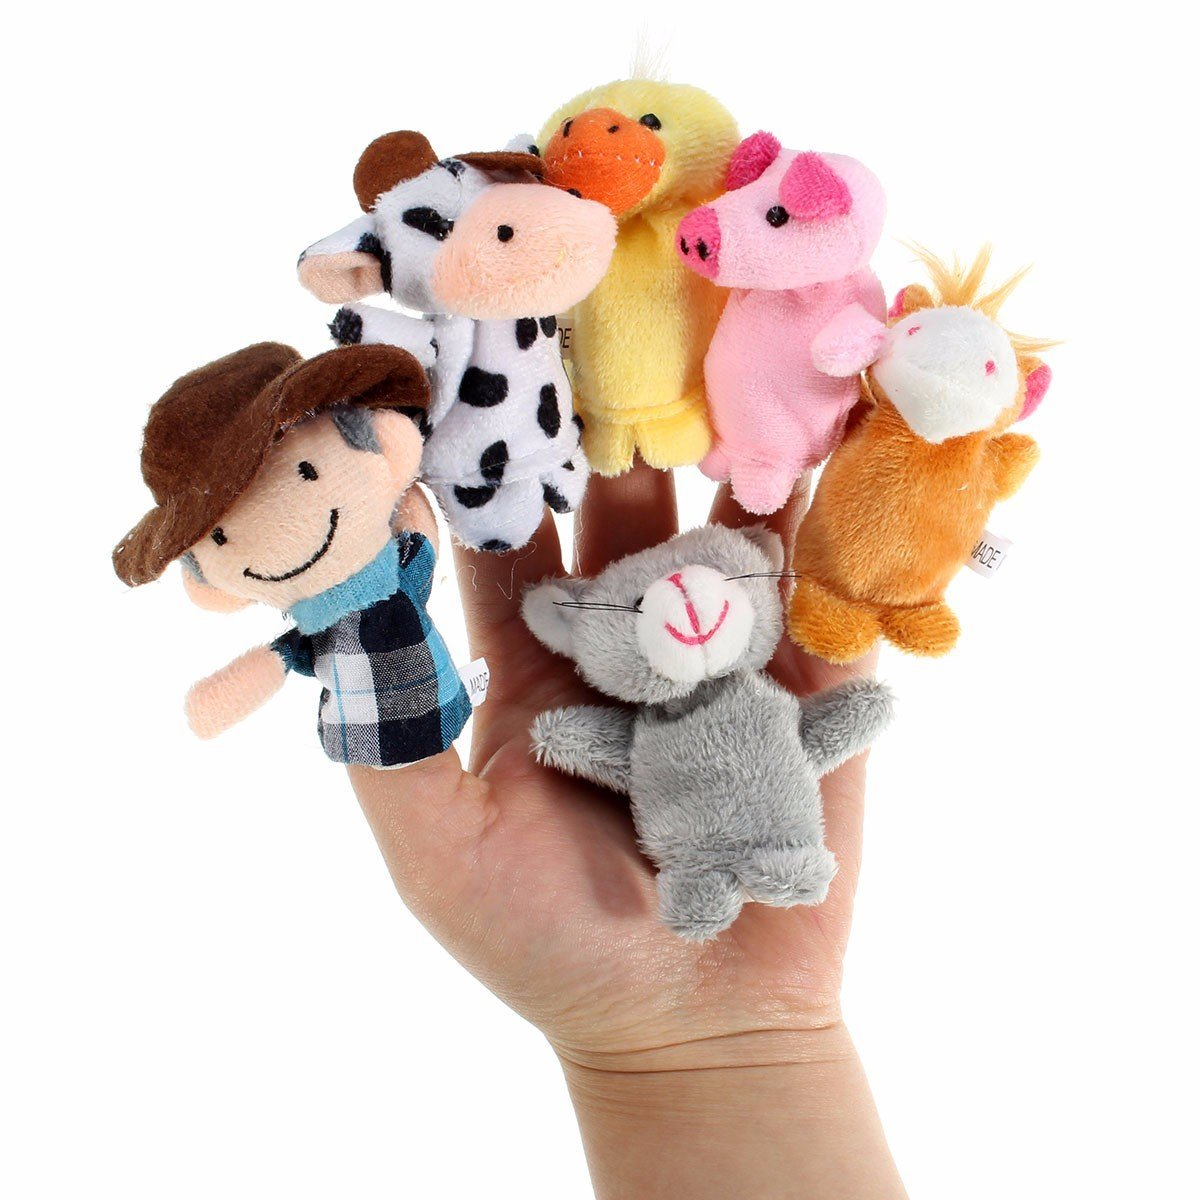 Nursery Rhyme Plush Hand Puppets Finger Soft Toy For Baby Children Kids Gift